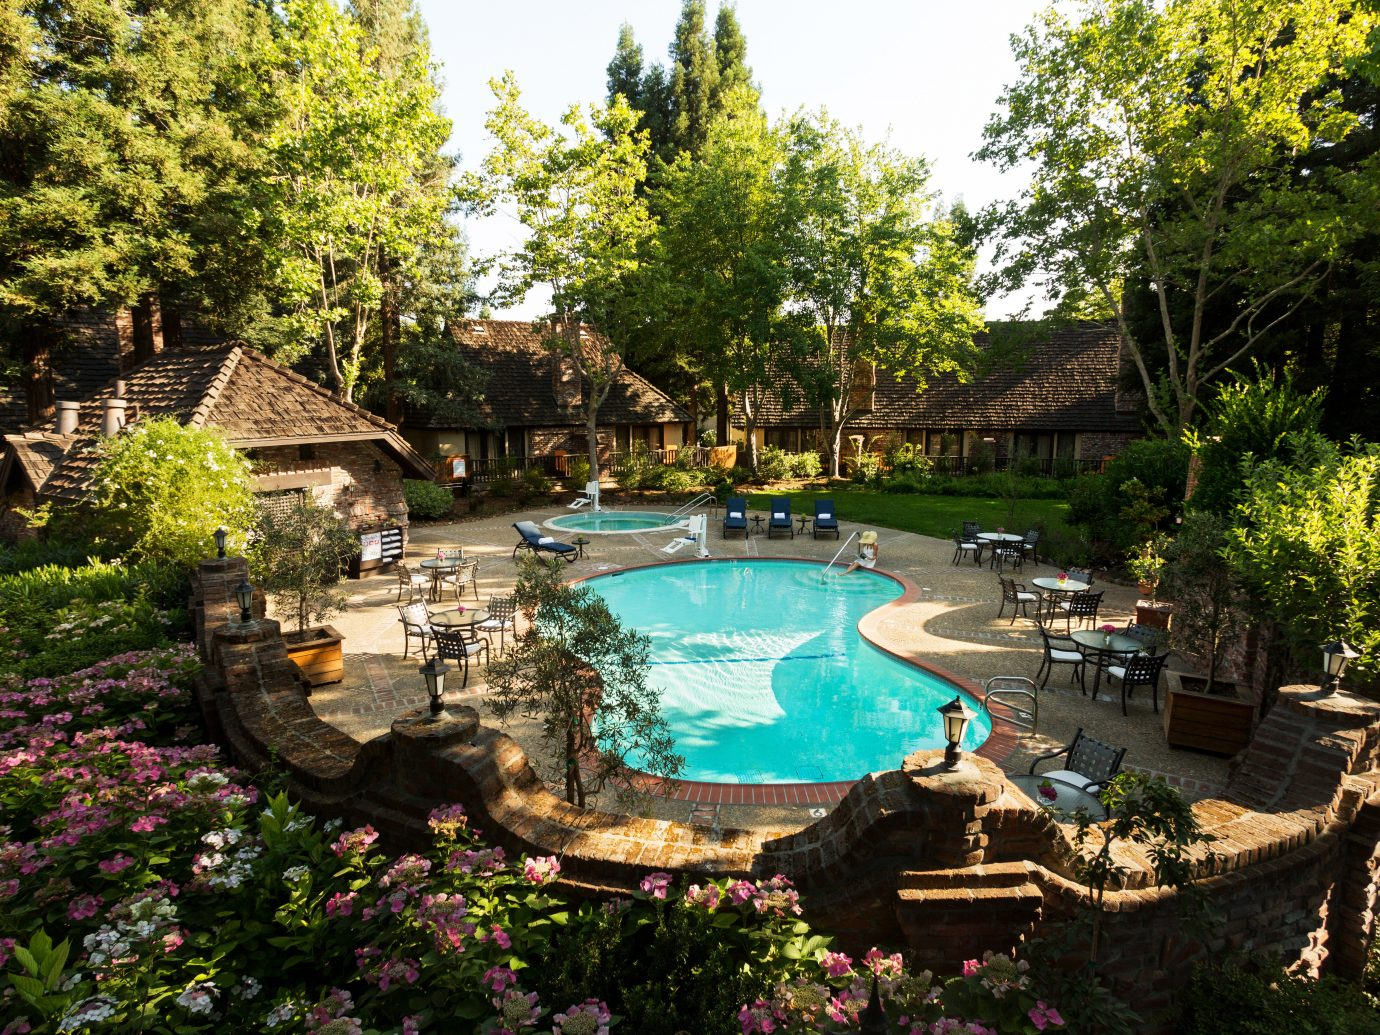 Grounds Health + Wellness Hotels Inn Patio Pool Romantic Spa Retreats Terrace Trip Ideas tree outdoor swimming pool estate Garden backyard Resort pond botanical garden yard mansion plant area surrounded several day